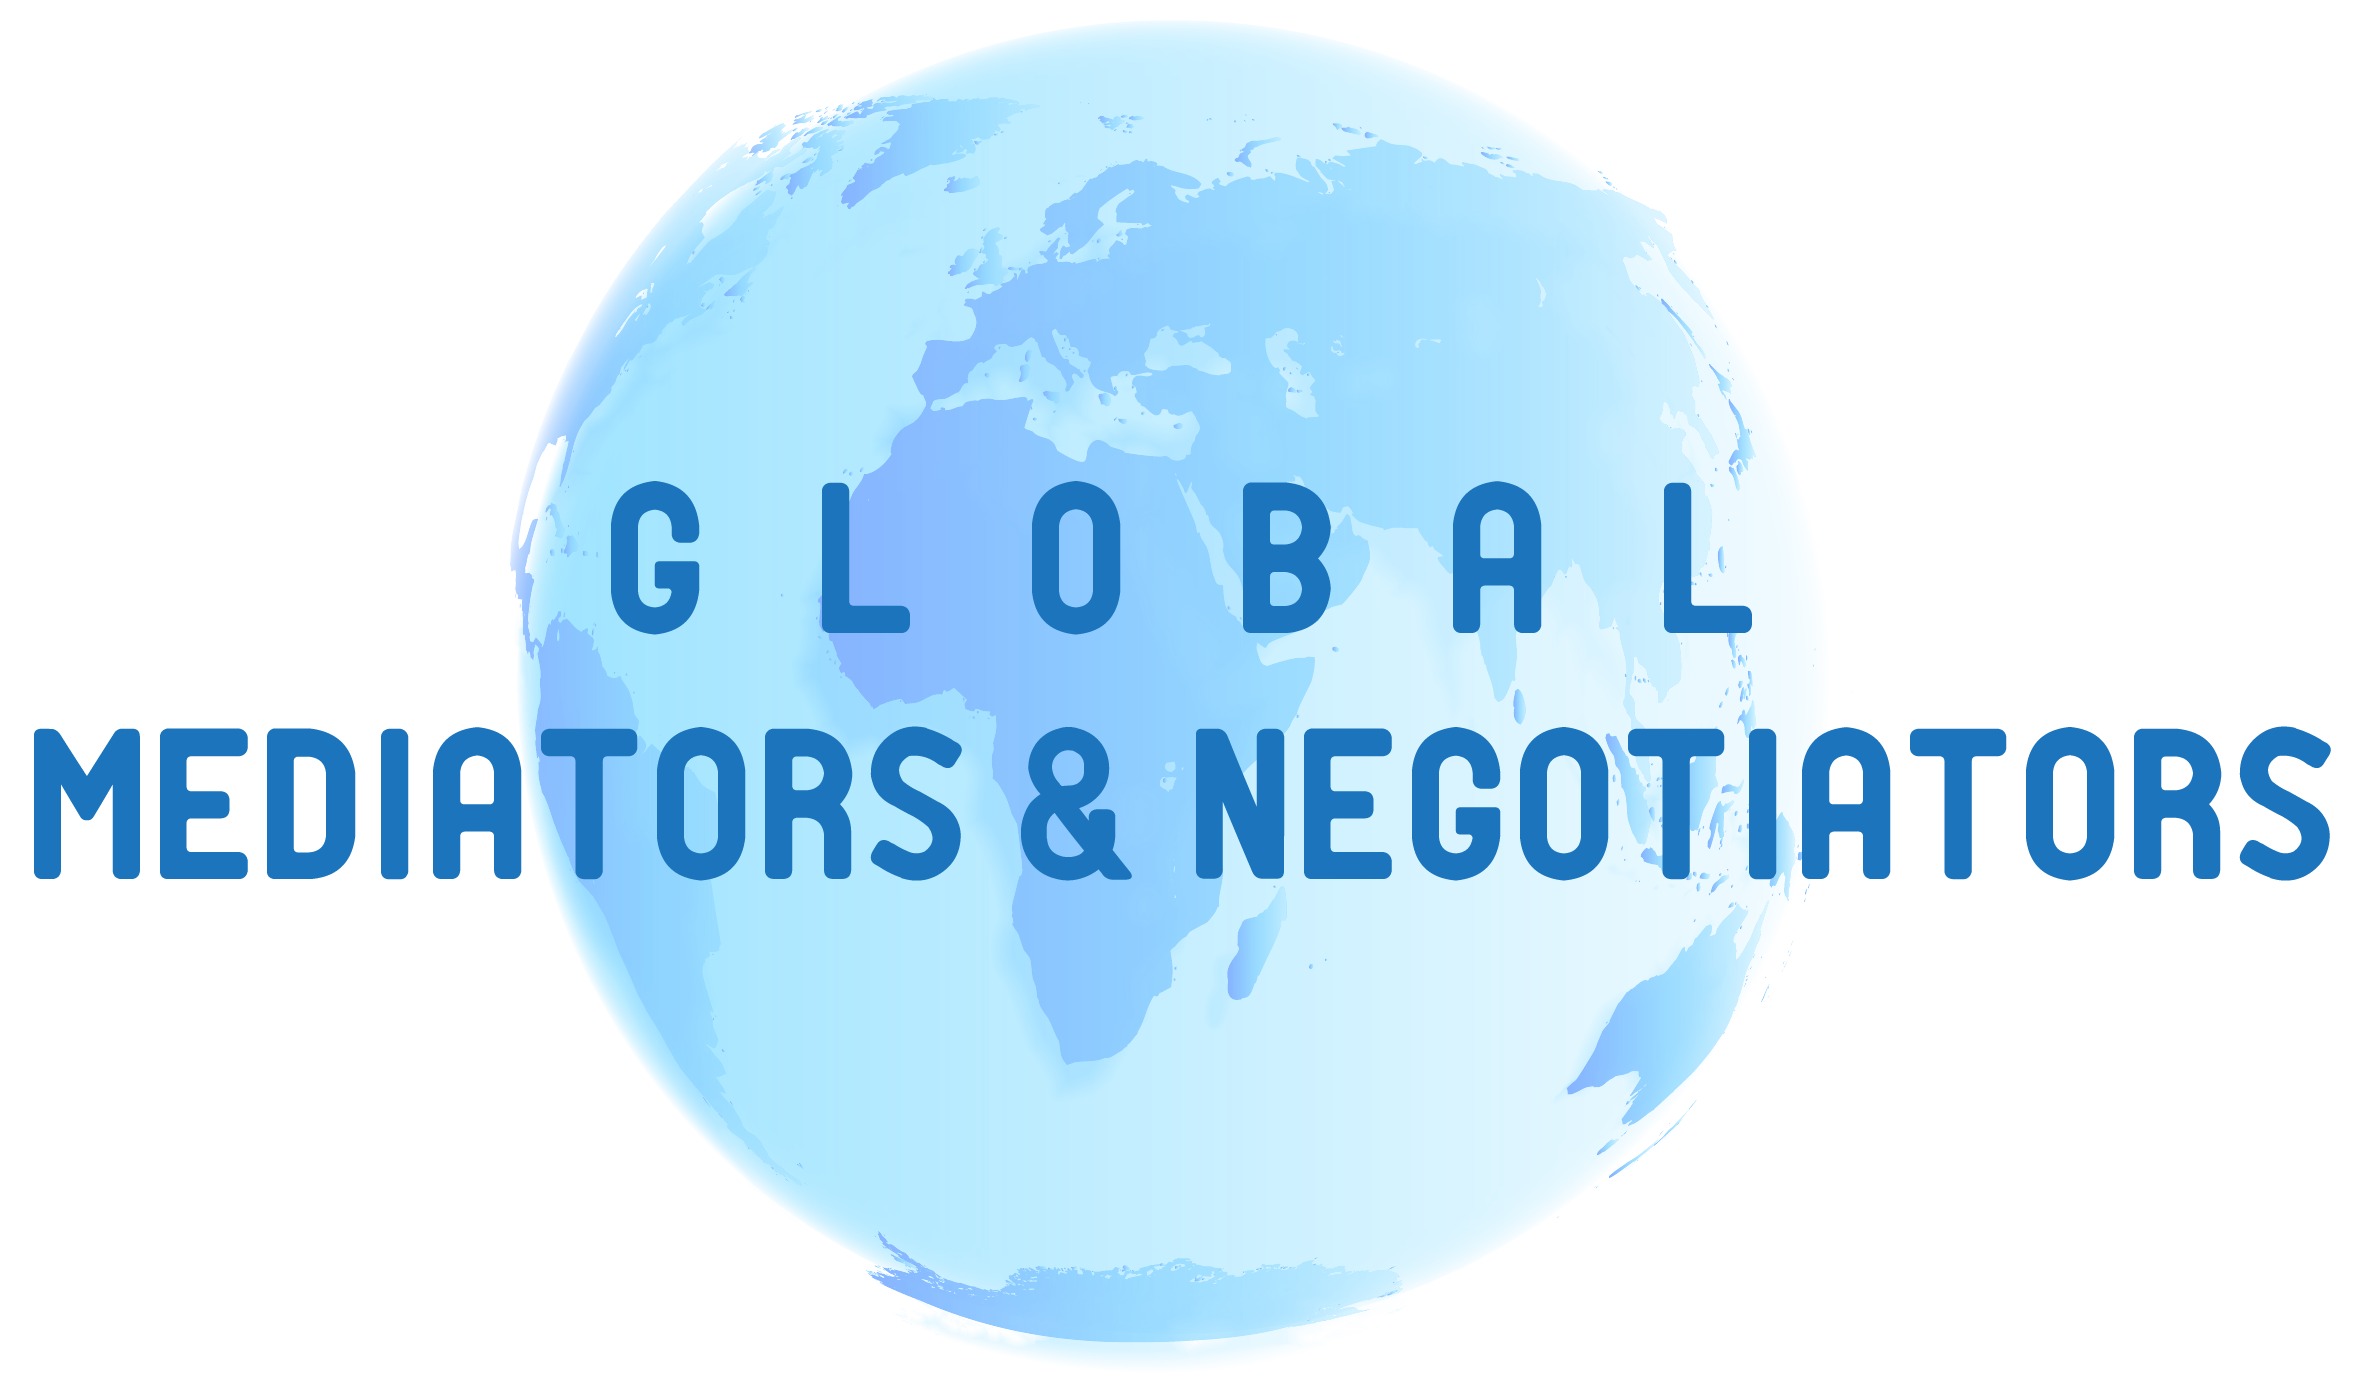 Global Mediators & Negotiators